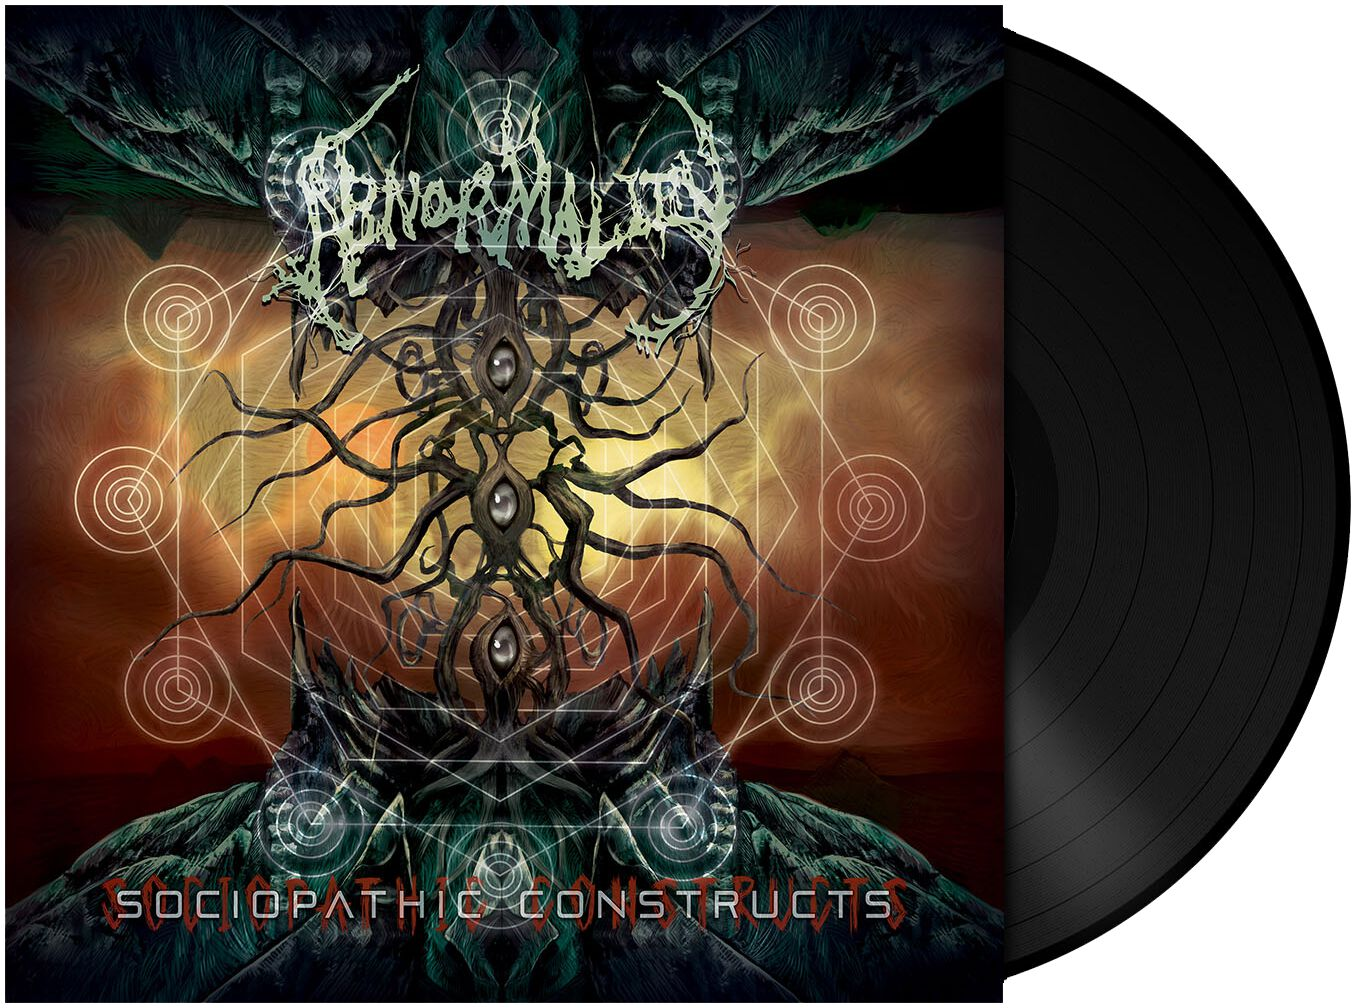 Image of Abnormality Sociopathic constructs LP Standard